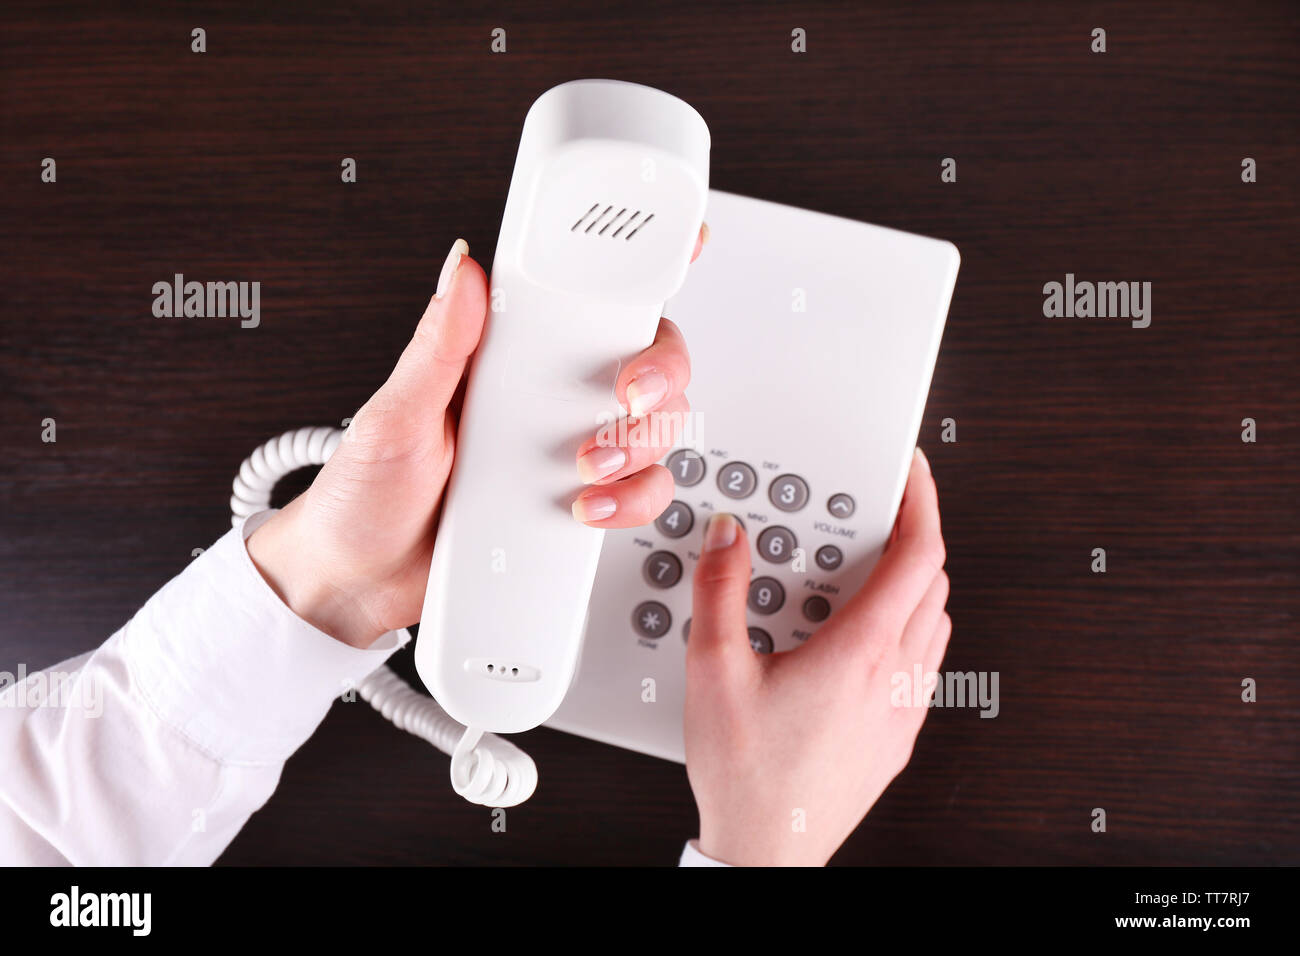 Female hand holding phone receiver and dialing number on wooden background - Stock Image